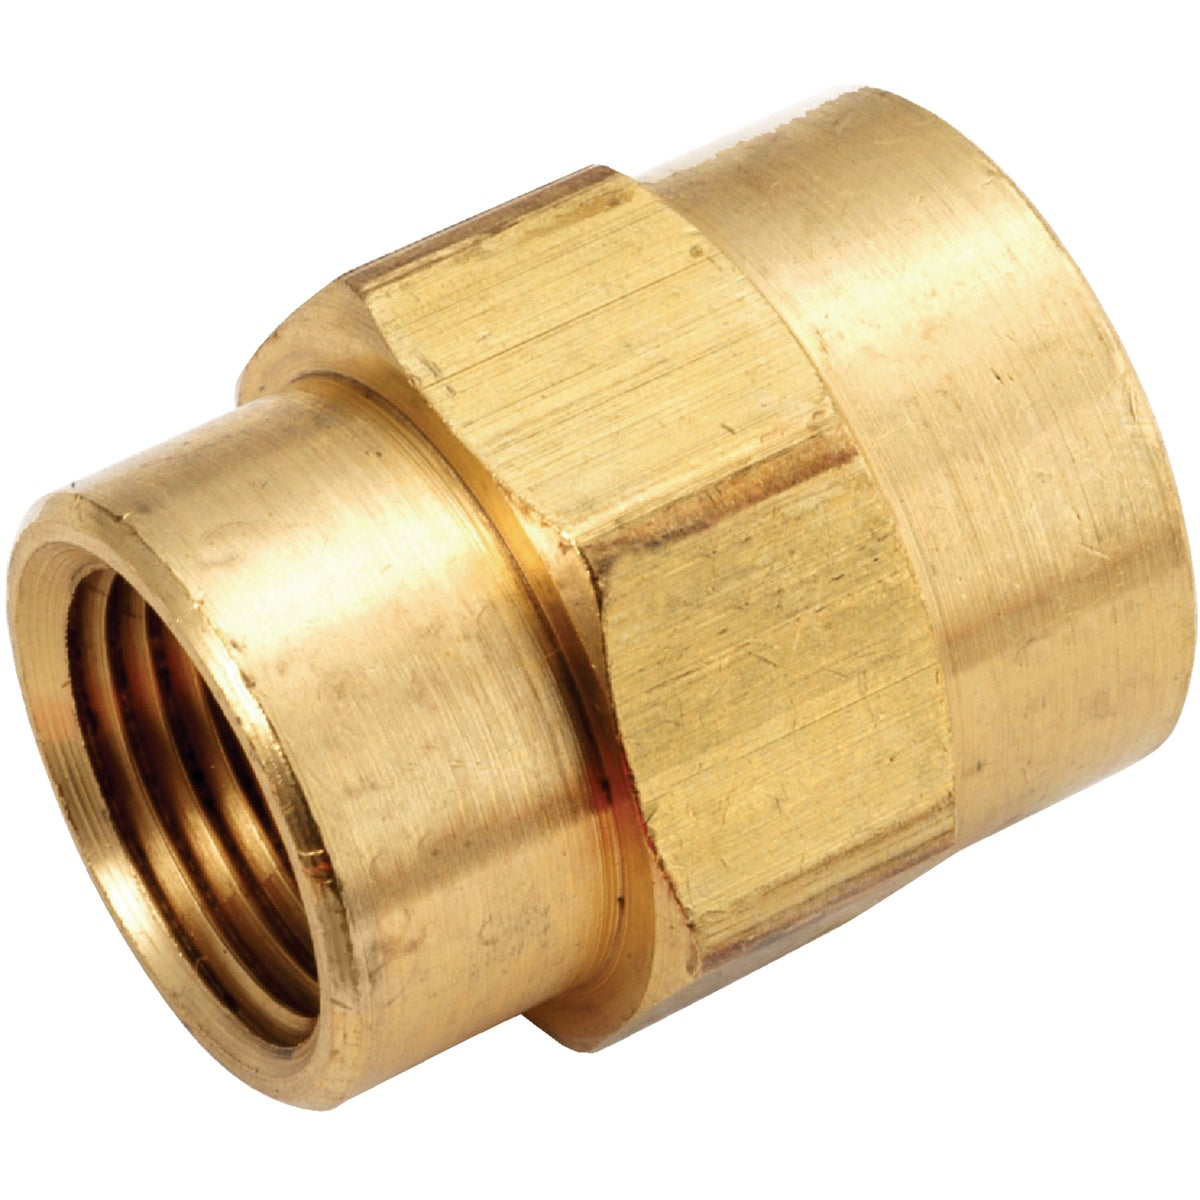 3/8X1/4 BRASS REDUC CPLN - 756119-0604 by Anderson Metals Corp